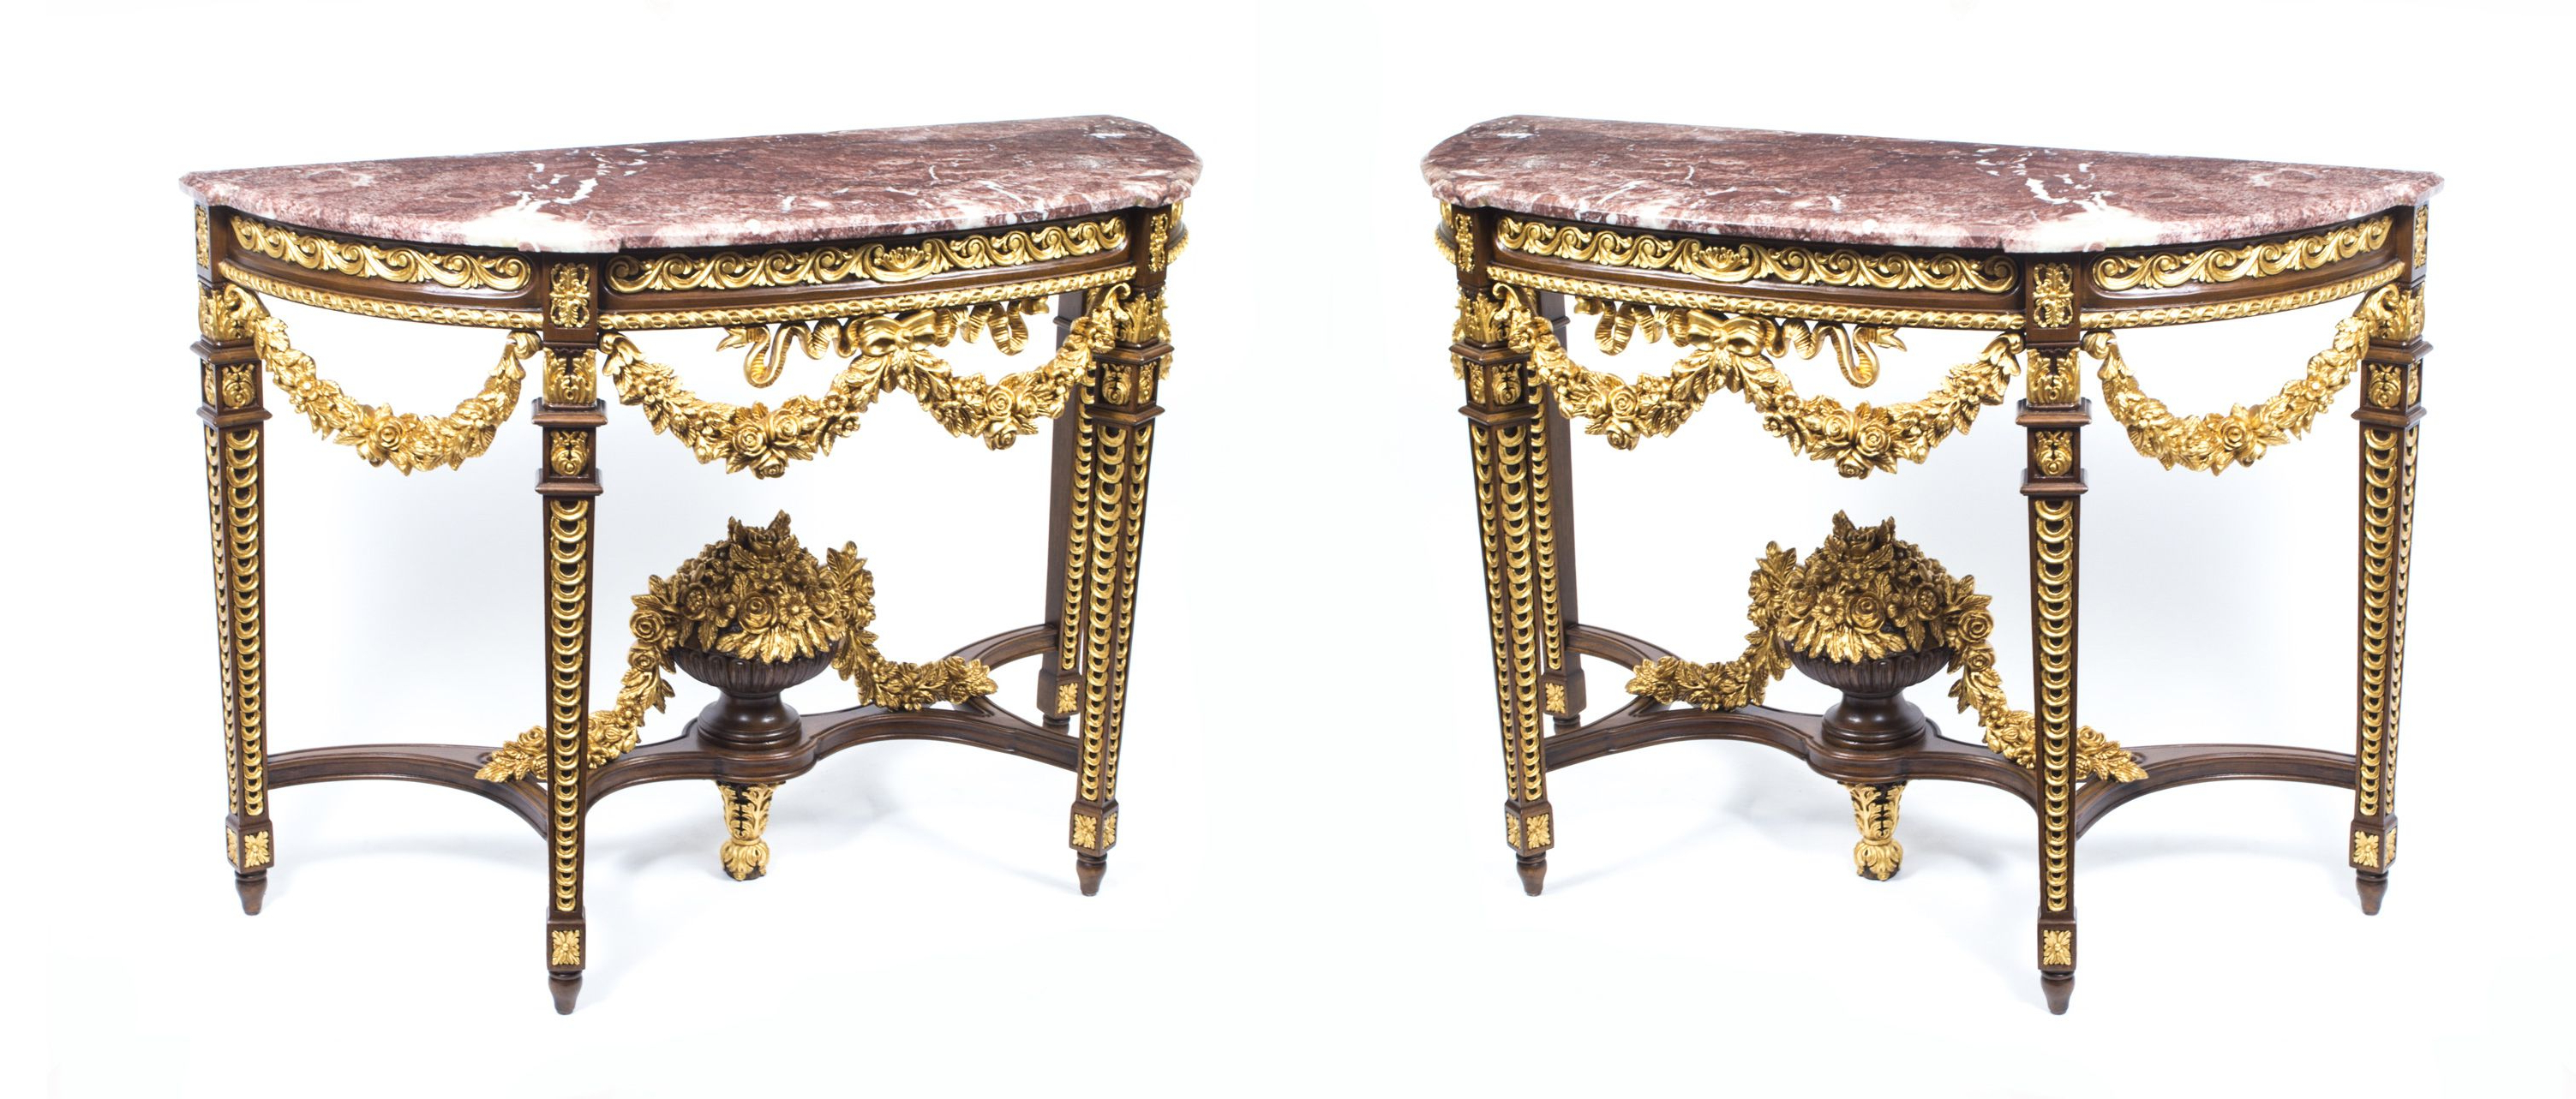 Preferred A Fantastic Pair Of Half Moon Console Tables In The Opulent Rococo Regarding Roman Metal Top Console Tables (View 12 of 20)